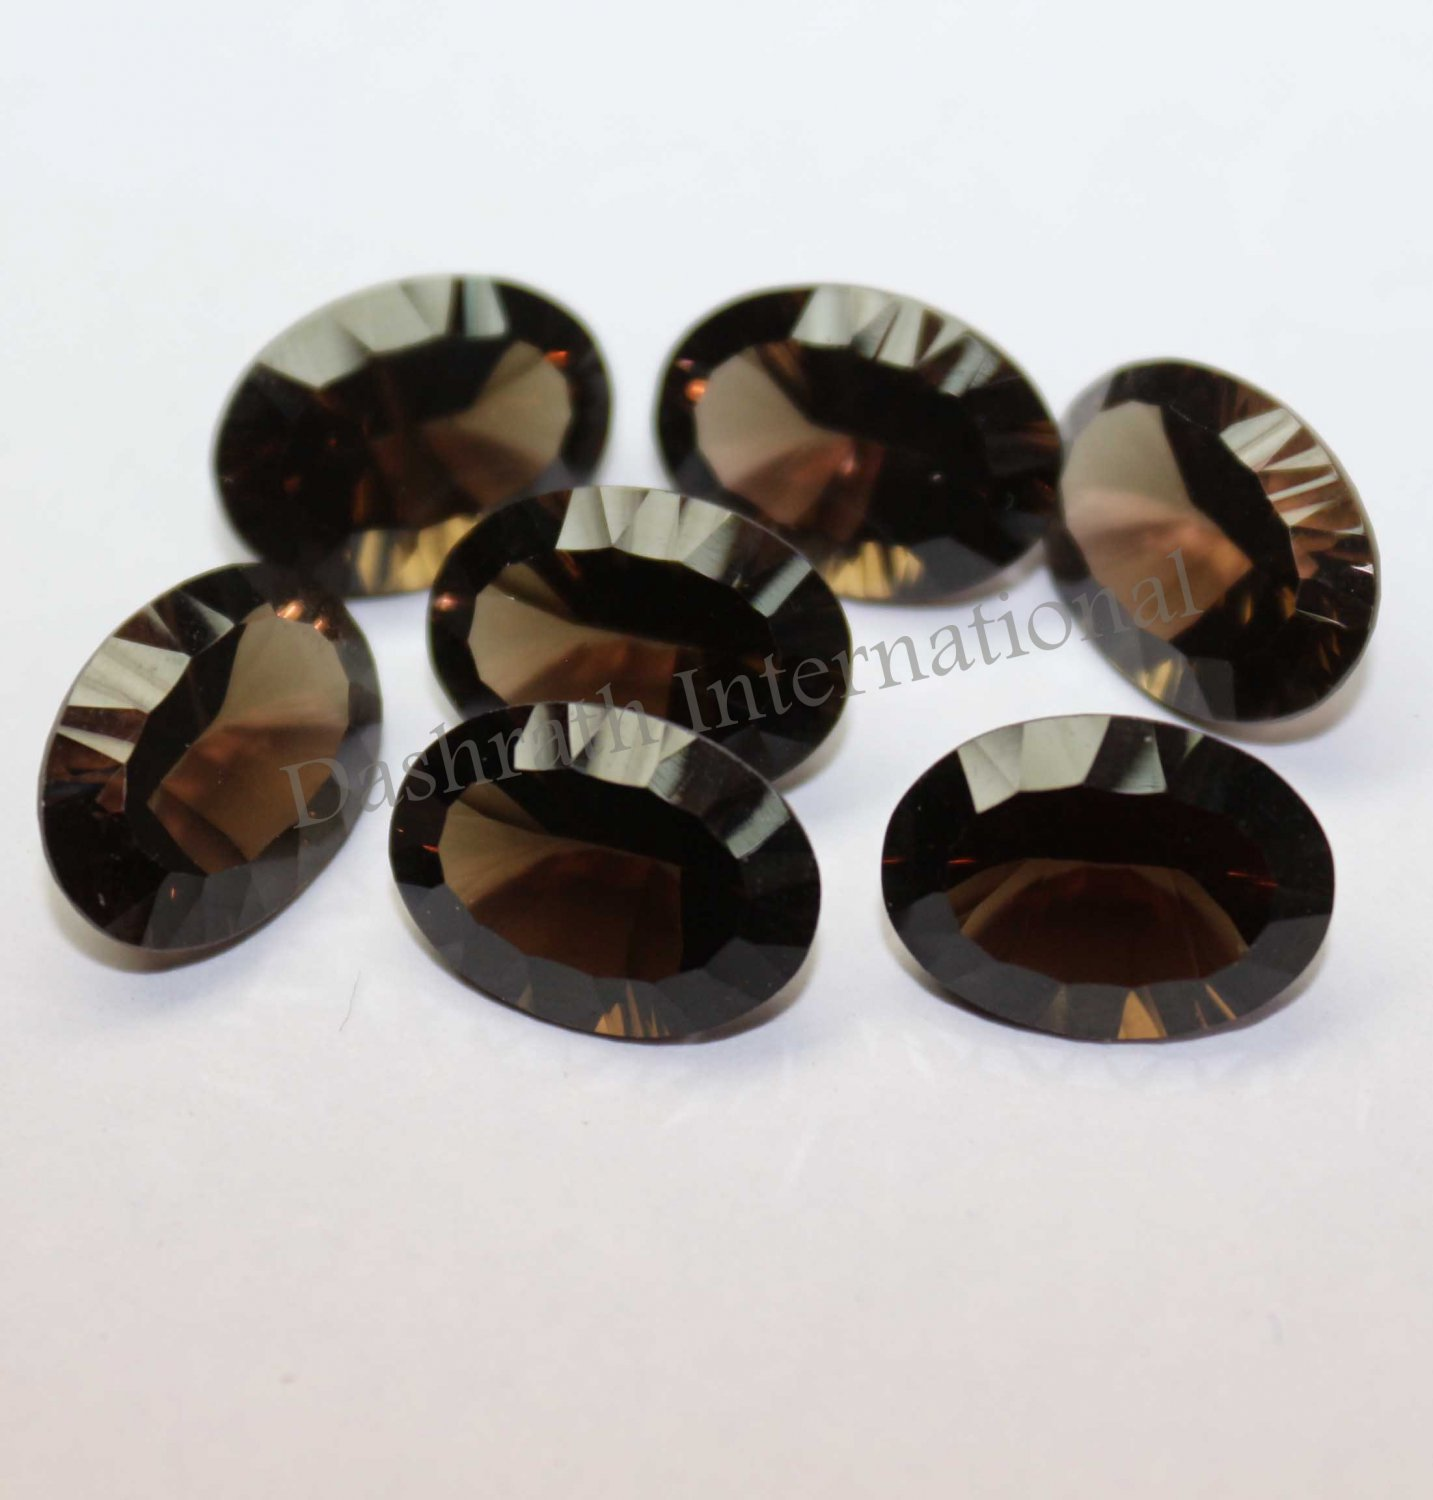 9x11mm Natural Smoky Quartz Concave Cut  Oval  25 Pieces Lot  (SI) Top Quality  Loose Gemstone